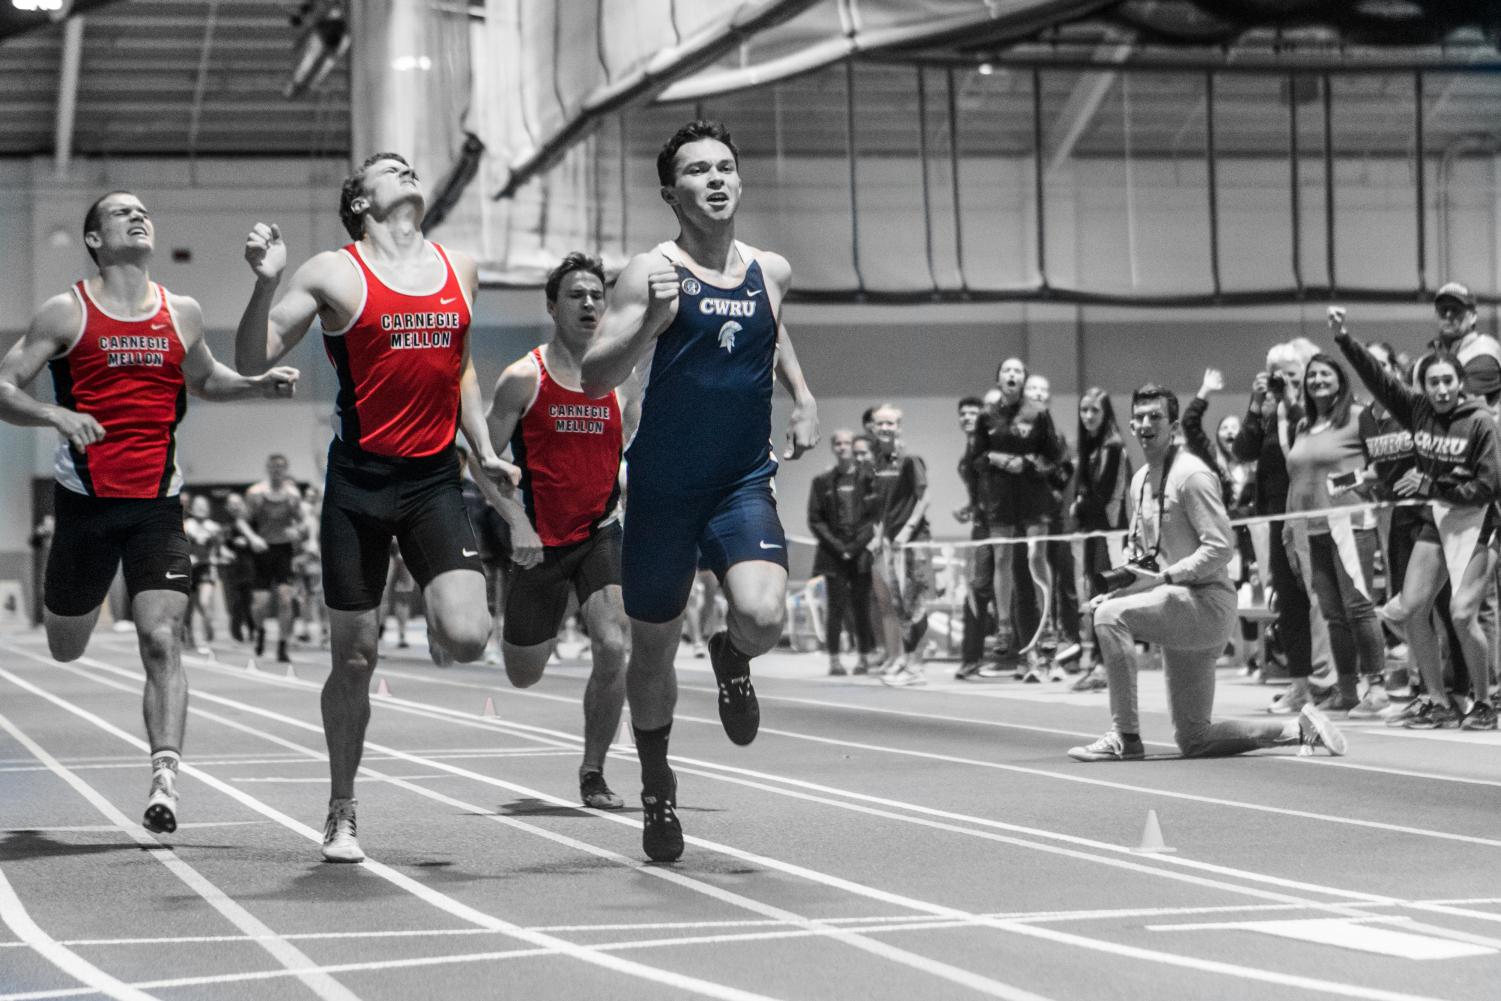 Despite strong efforts from a plethora of team members, the CWRU track and field teams lost a close dual meet to archrival Carnegie Mellon University.